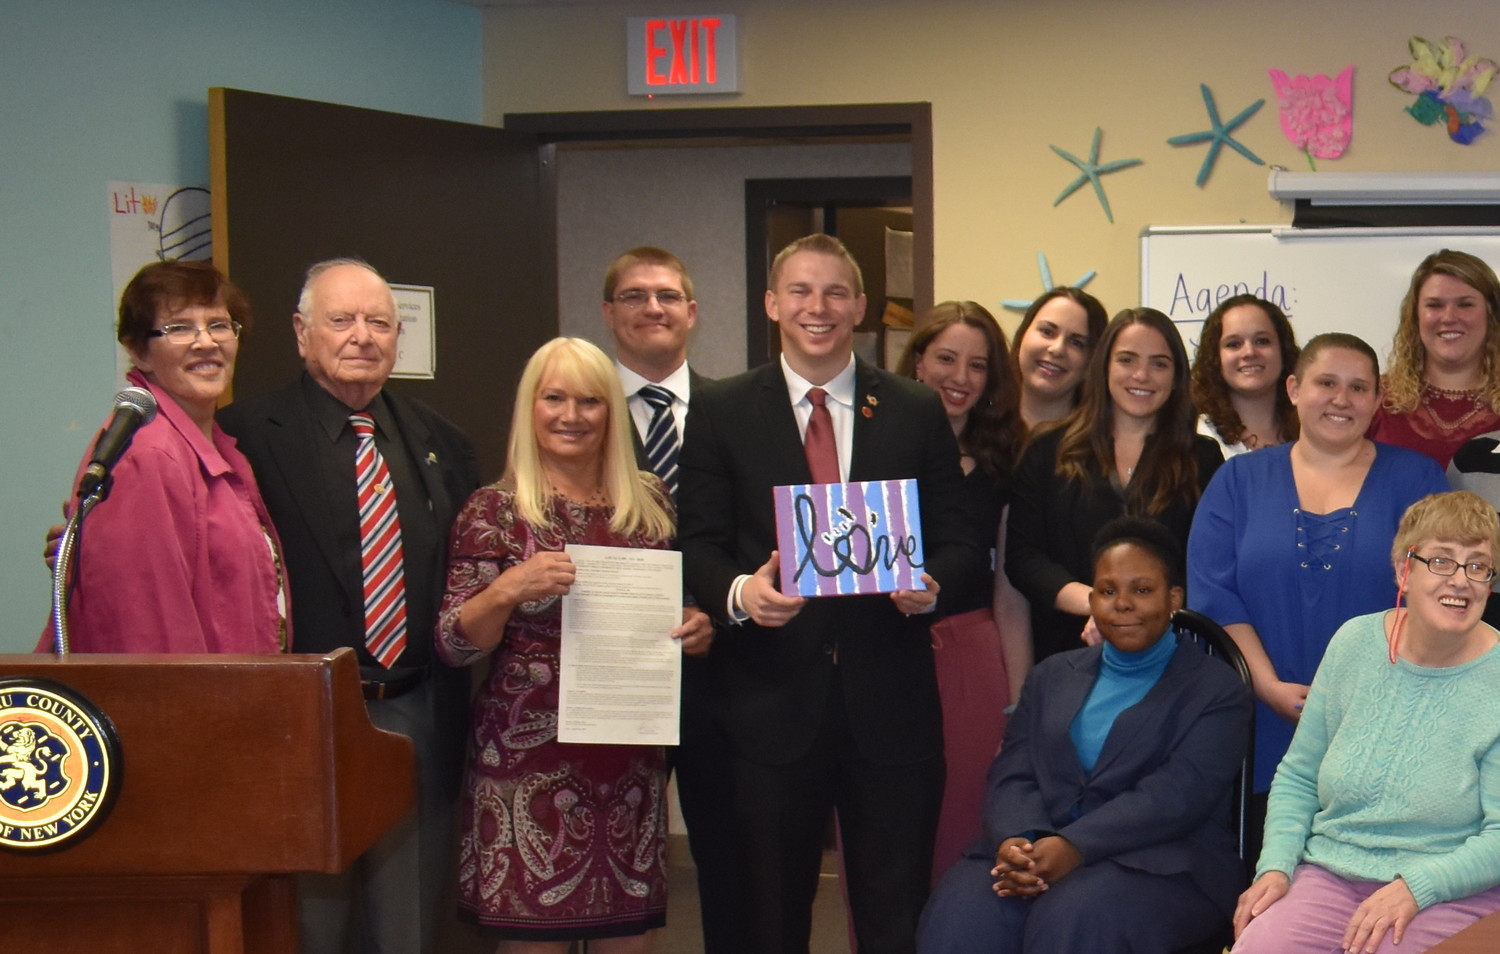 Supporters from the Mill Neck School for the Deaf's Day Habilitation Center, in Hicksville, attended the signing of County Legislator Josh Lafazan's first bill, which requires ASL interpreters at all emergency news conferences in Nassau County.